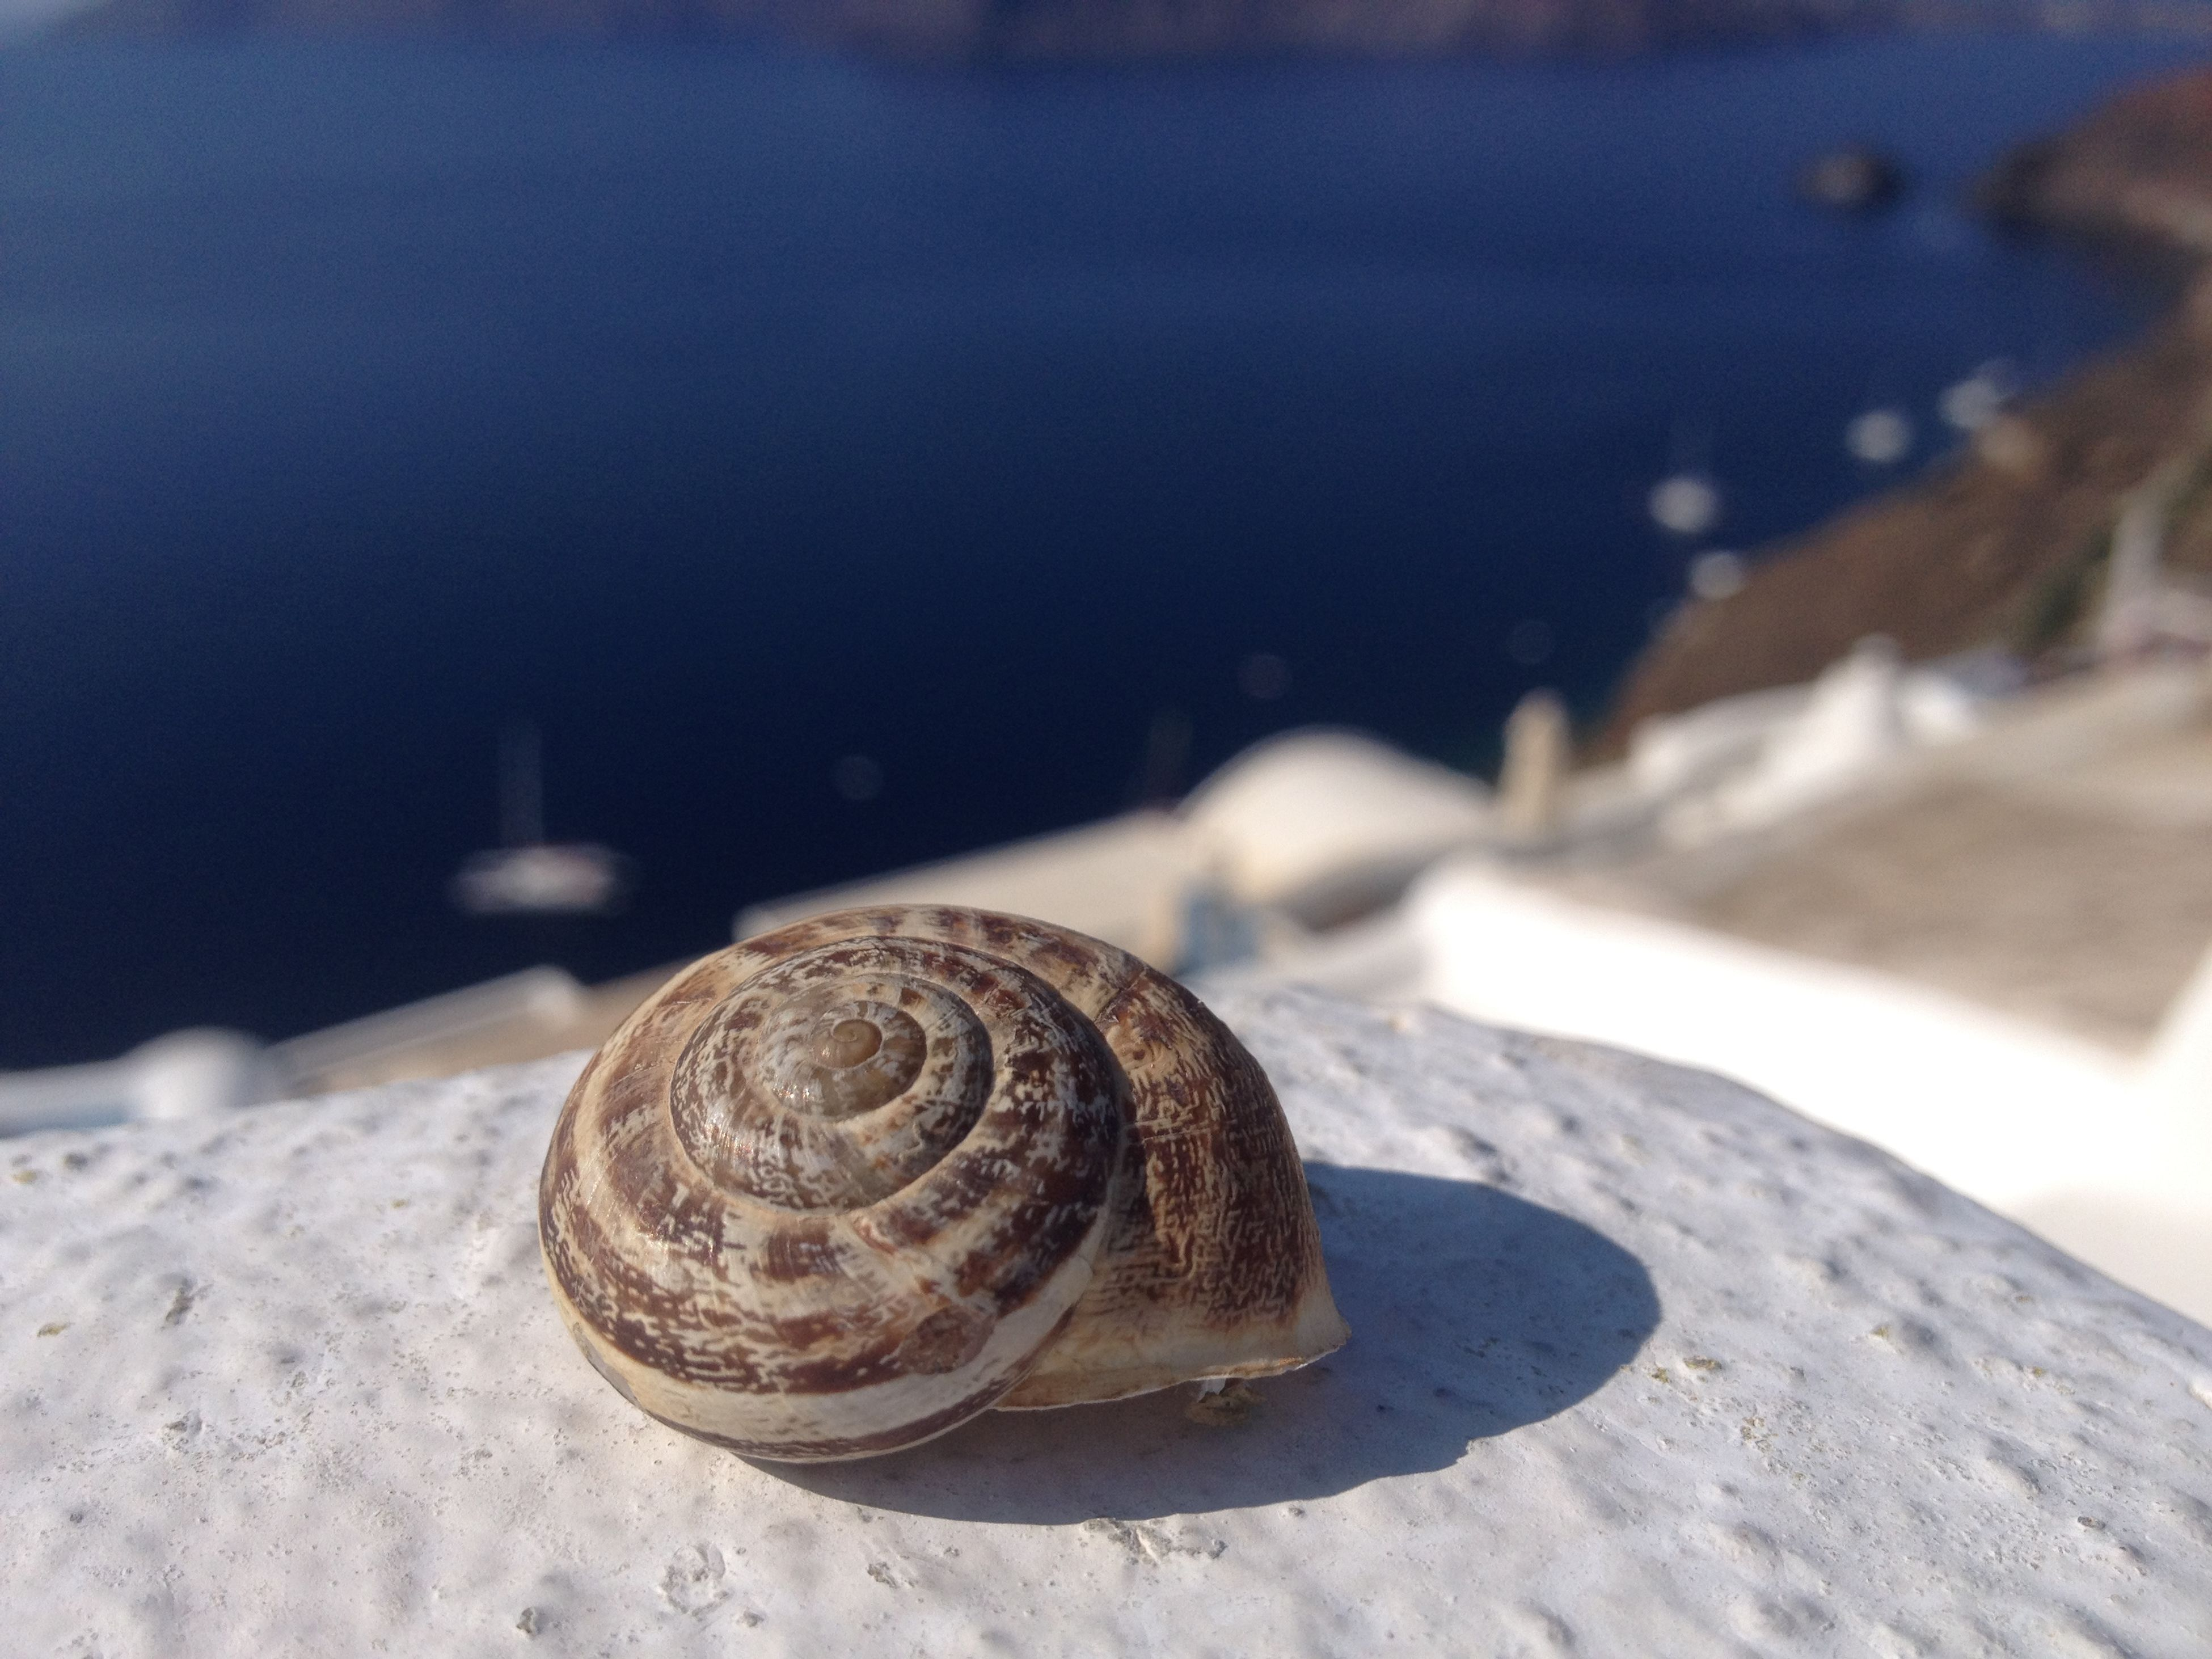 animal shell, close-up, snail, focus on foreground, shell, seashell, one animal, animals in the wild, animal themes, nature, wildlife, outdoors, wood - material, day, natural pattern, no people, rock - object, selective focus, textured, high angle view